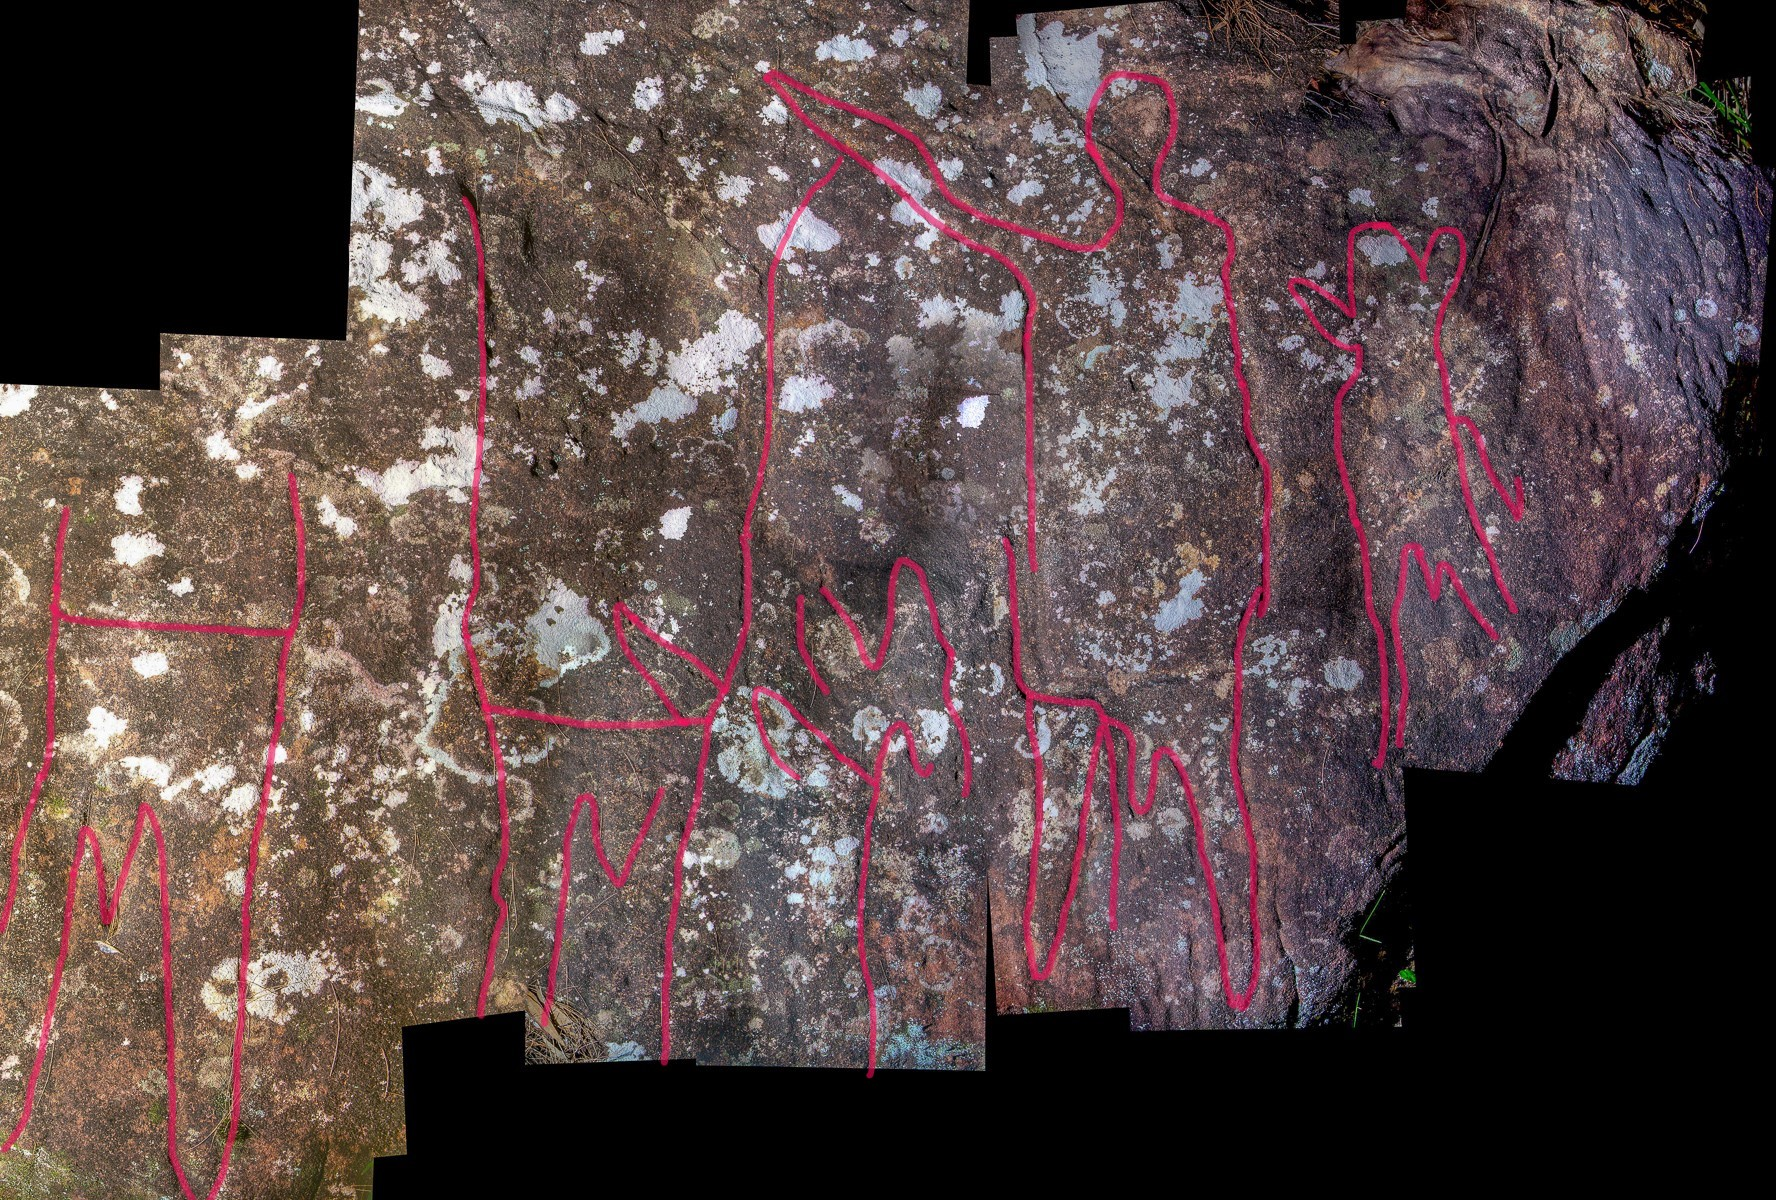 Montage2 stitch LR highlighted 1 Upper Smiths Creek frieze and mundoes